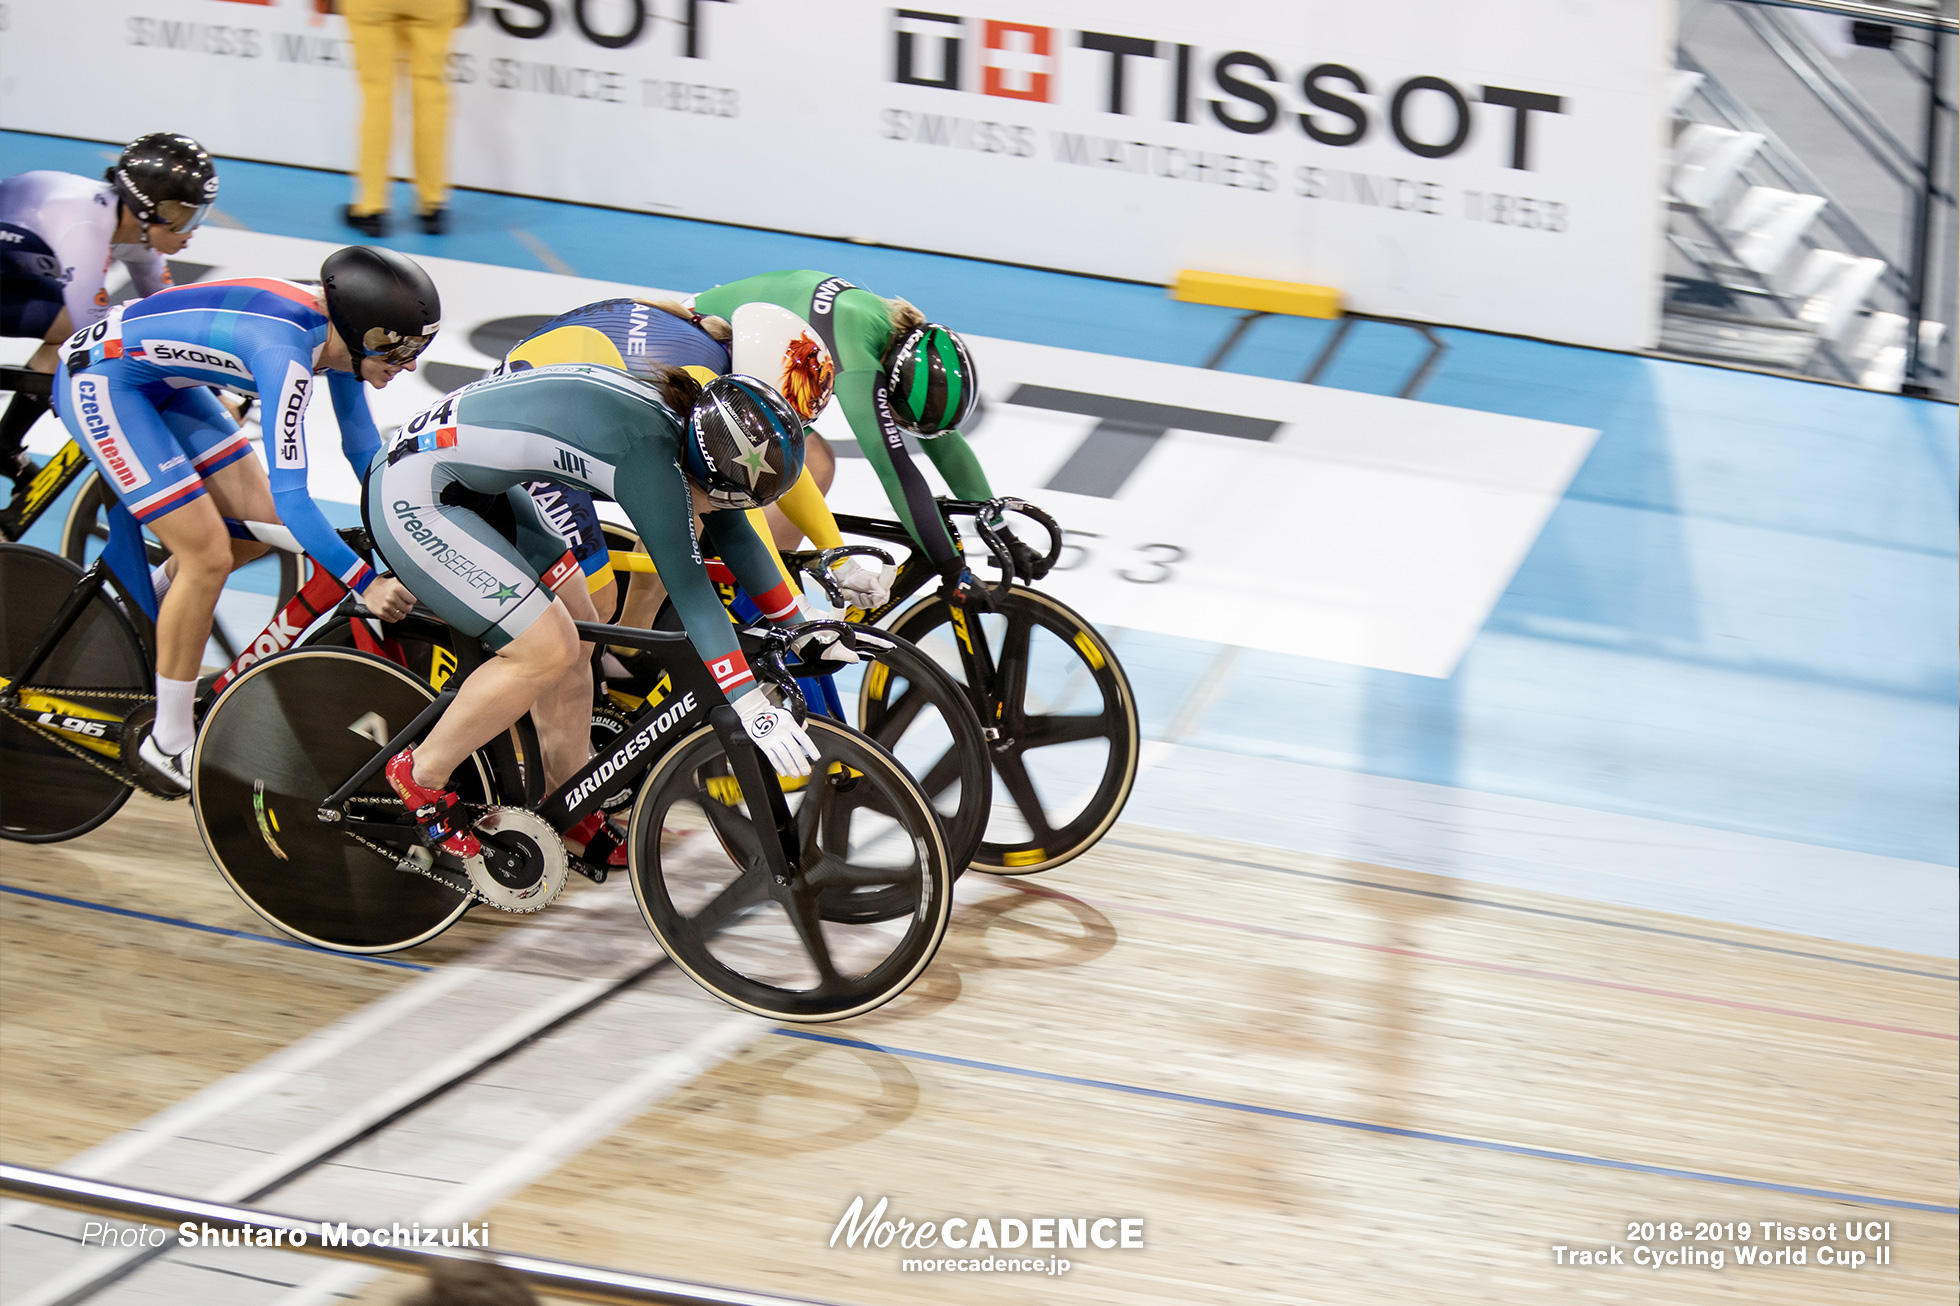 2018-2019 Tissot UCI Track Cycling World Cup II Women's Keirin 1st Round